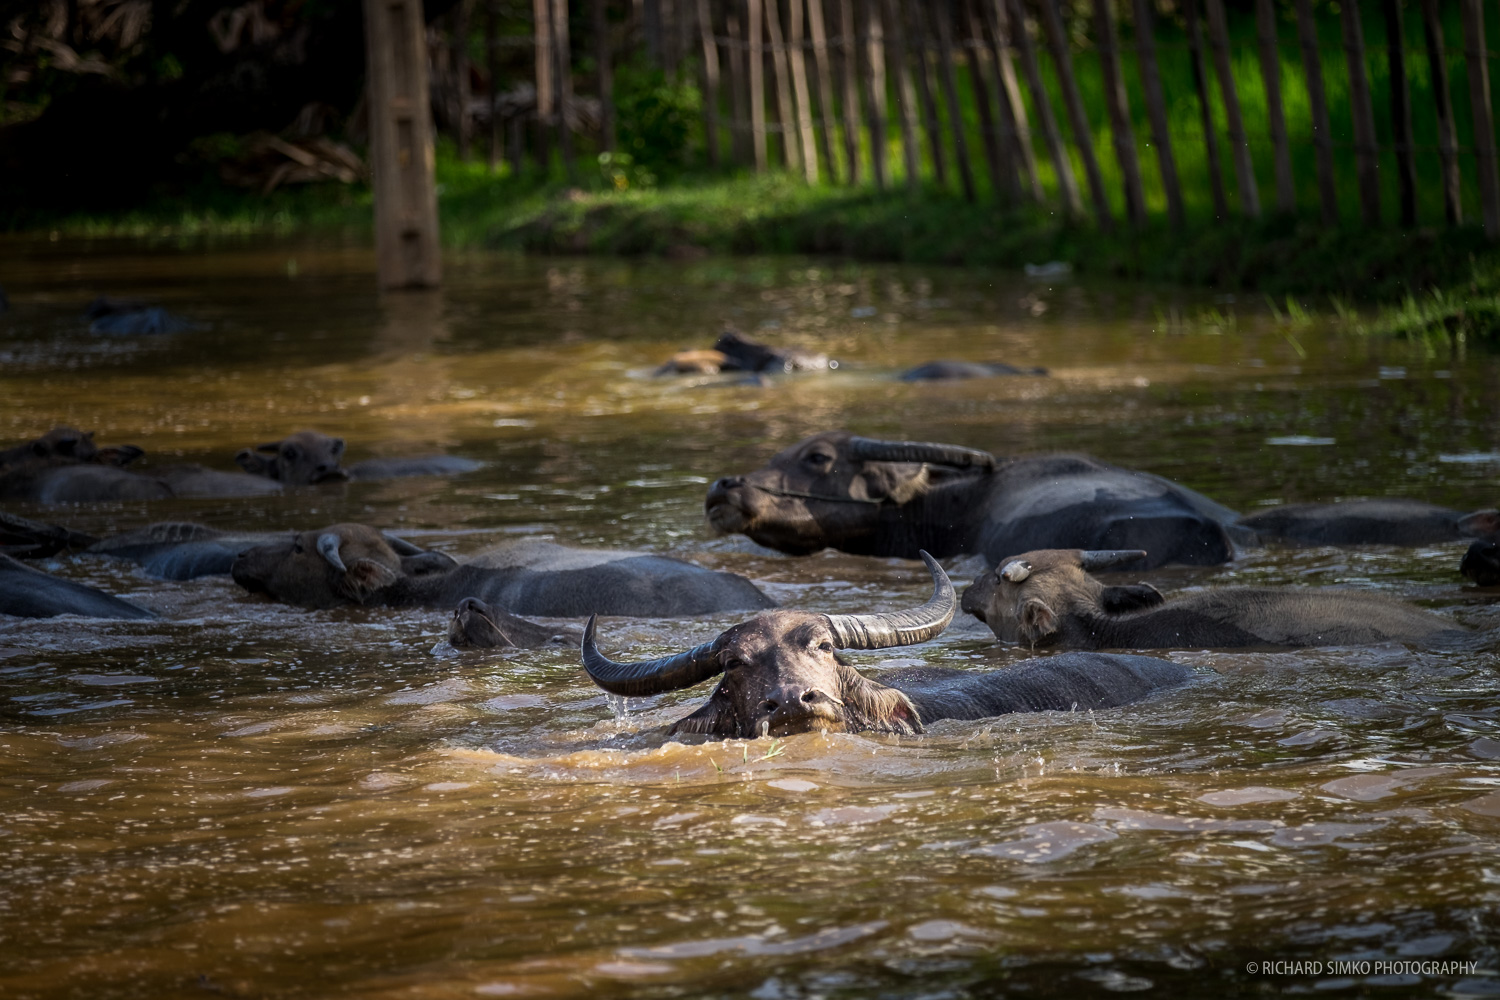 Water buffaloes taking a dip in the small village lake to escape the heat. S omewhere near Siem Reap.   Fujifilm X-T1, Fujinon 50-140mm   2.8